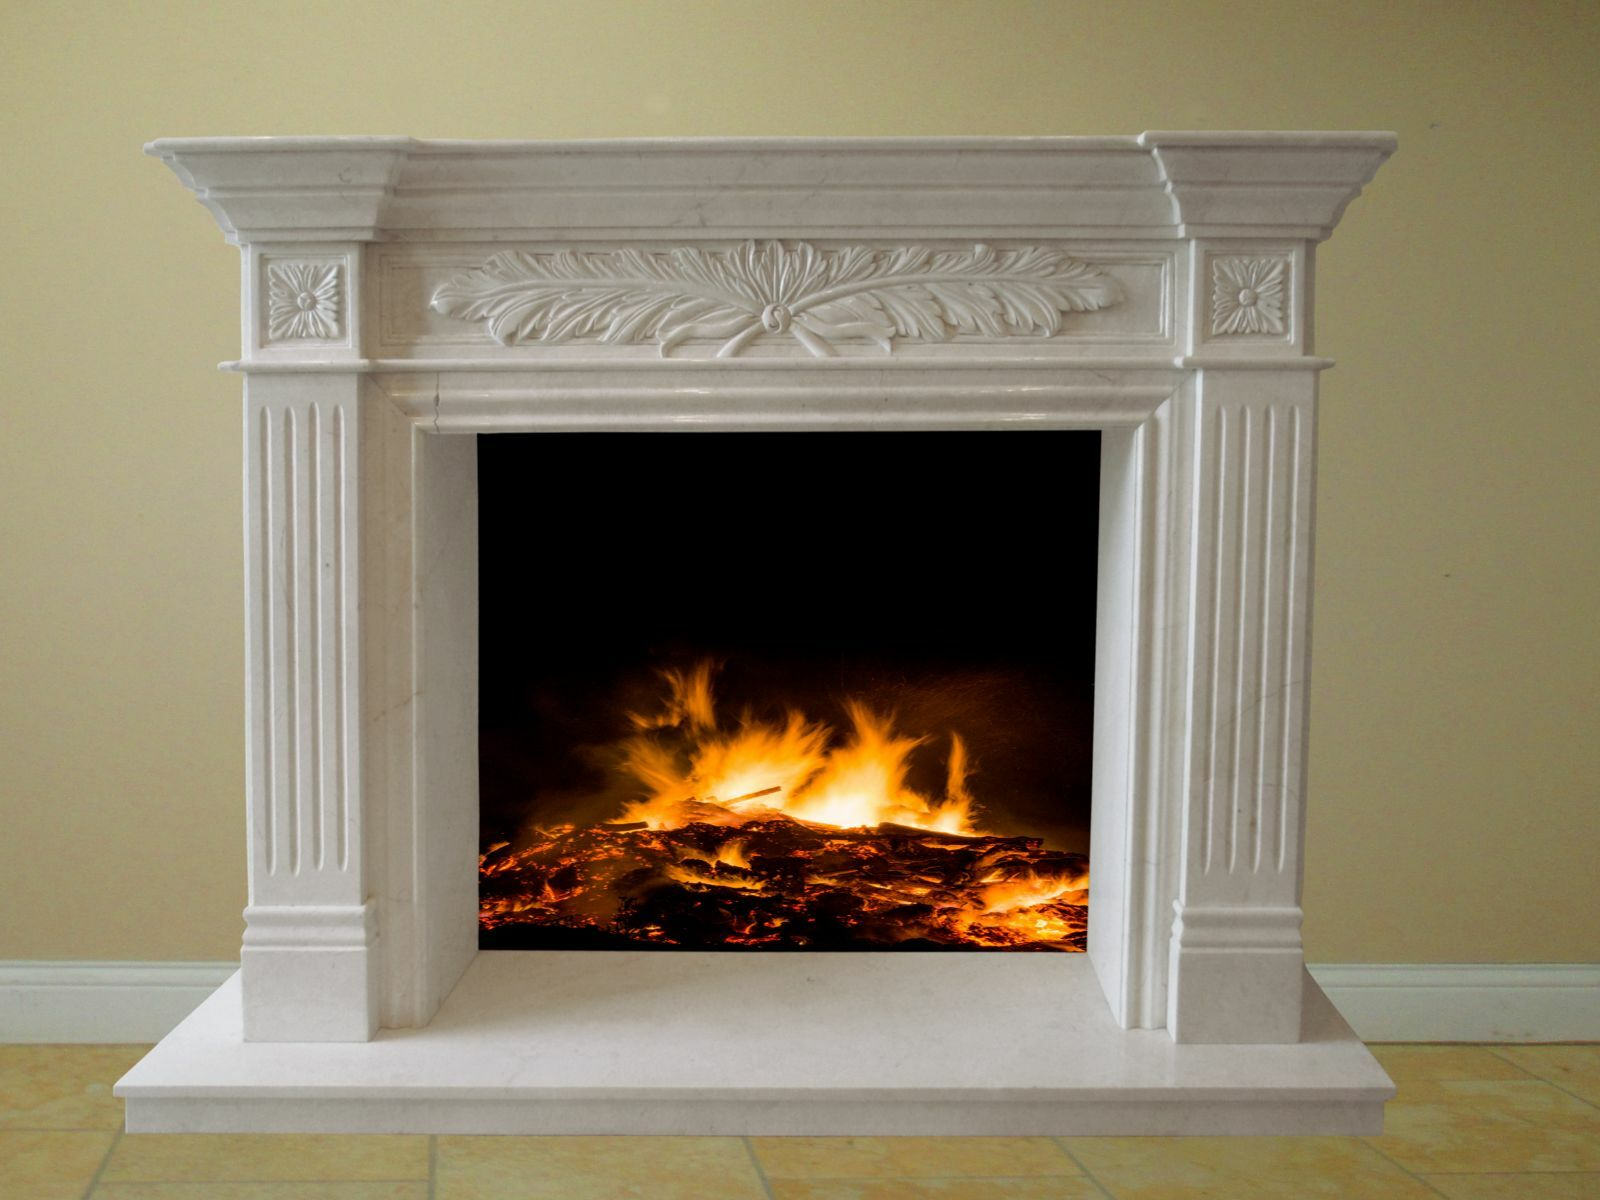 Blyss Carrie Micro Marble Micromarble Fireplace Surround Set Cream For Sale Online Ebay